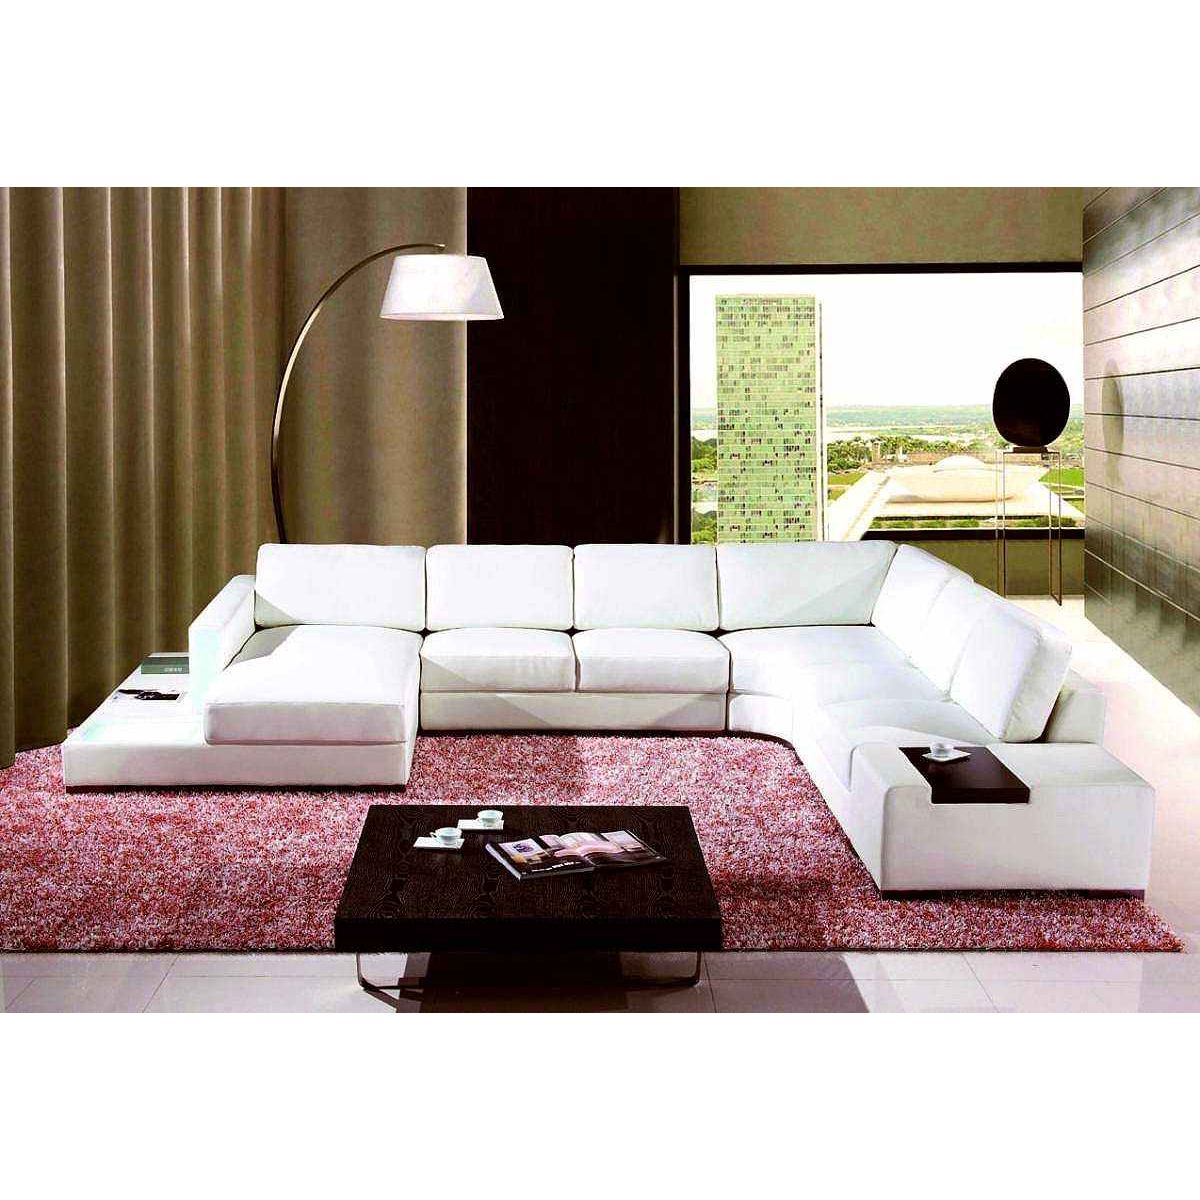 deco in paris canape cuir d angle blanc avec meridienne java can pano anglegauche java pu blanc. Black Bedroom Furniture Sets. Home Design Ideas